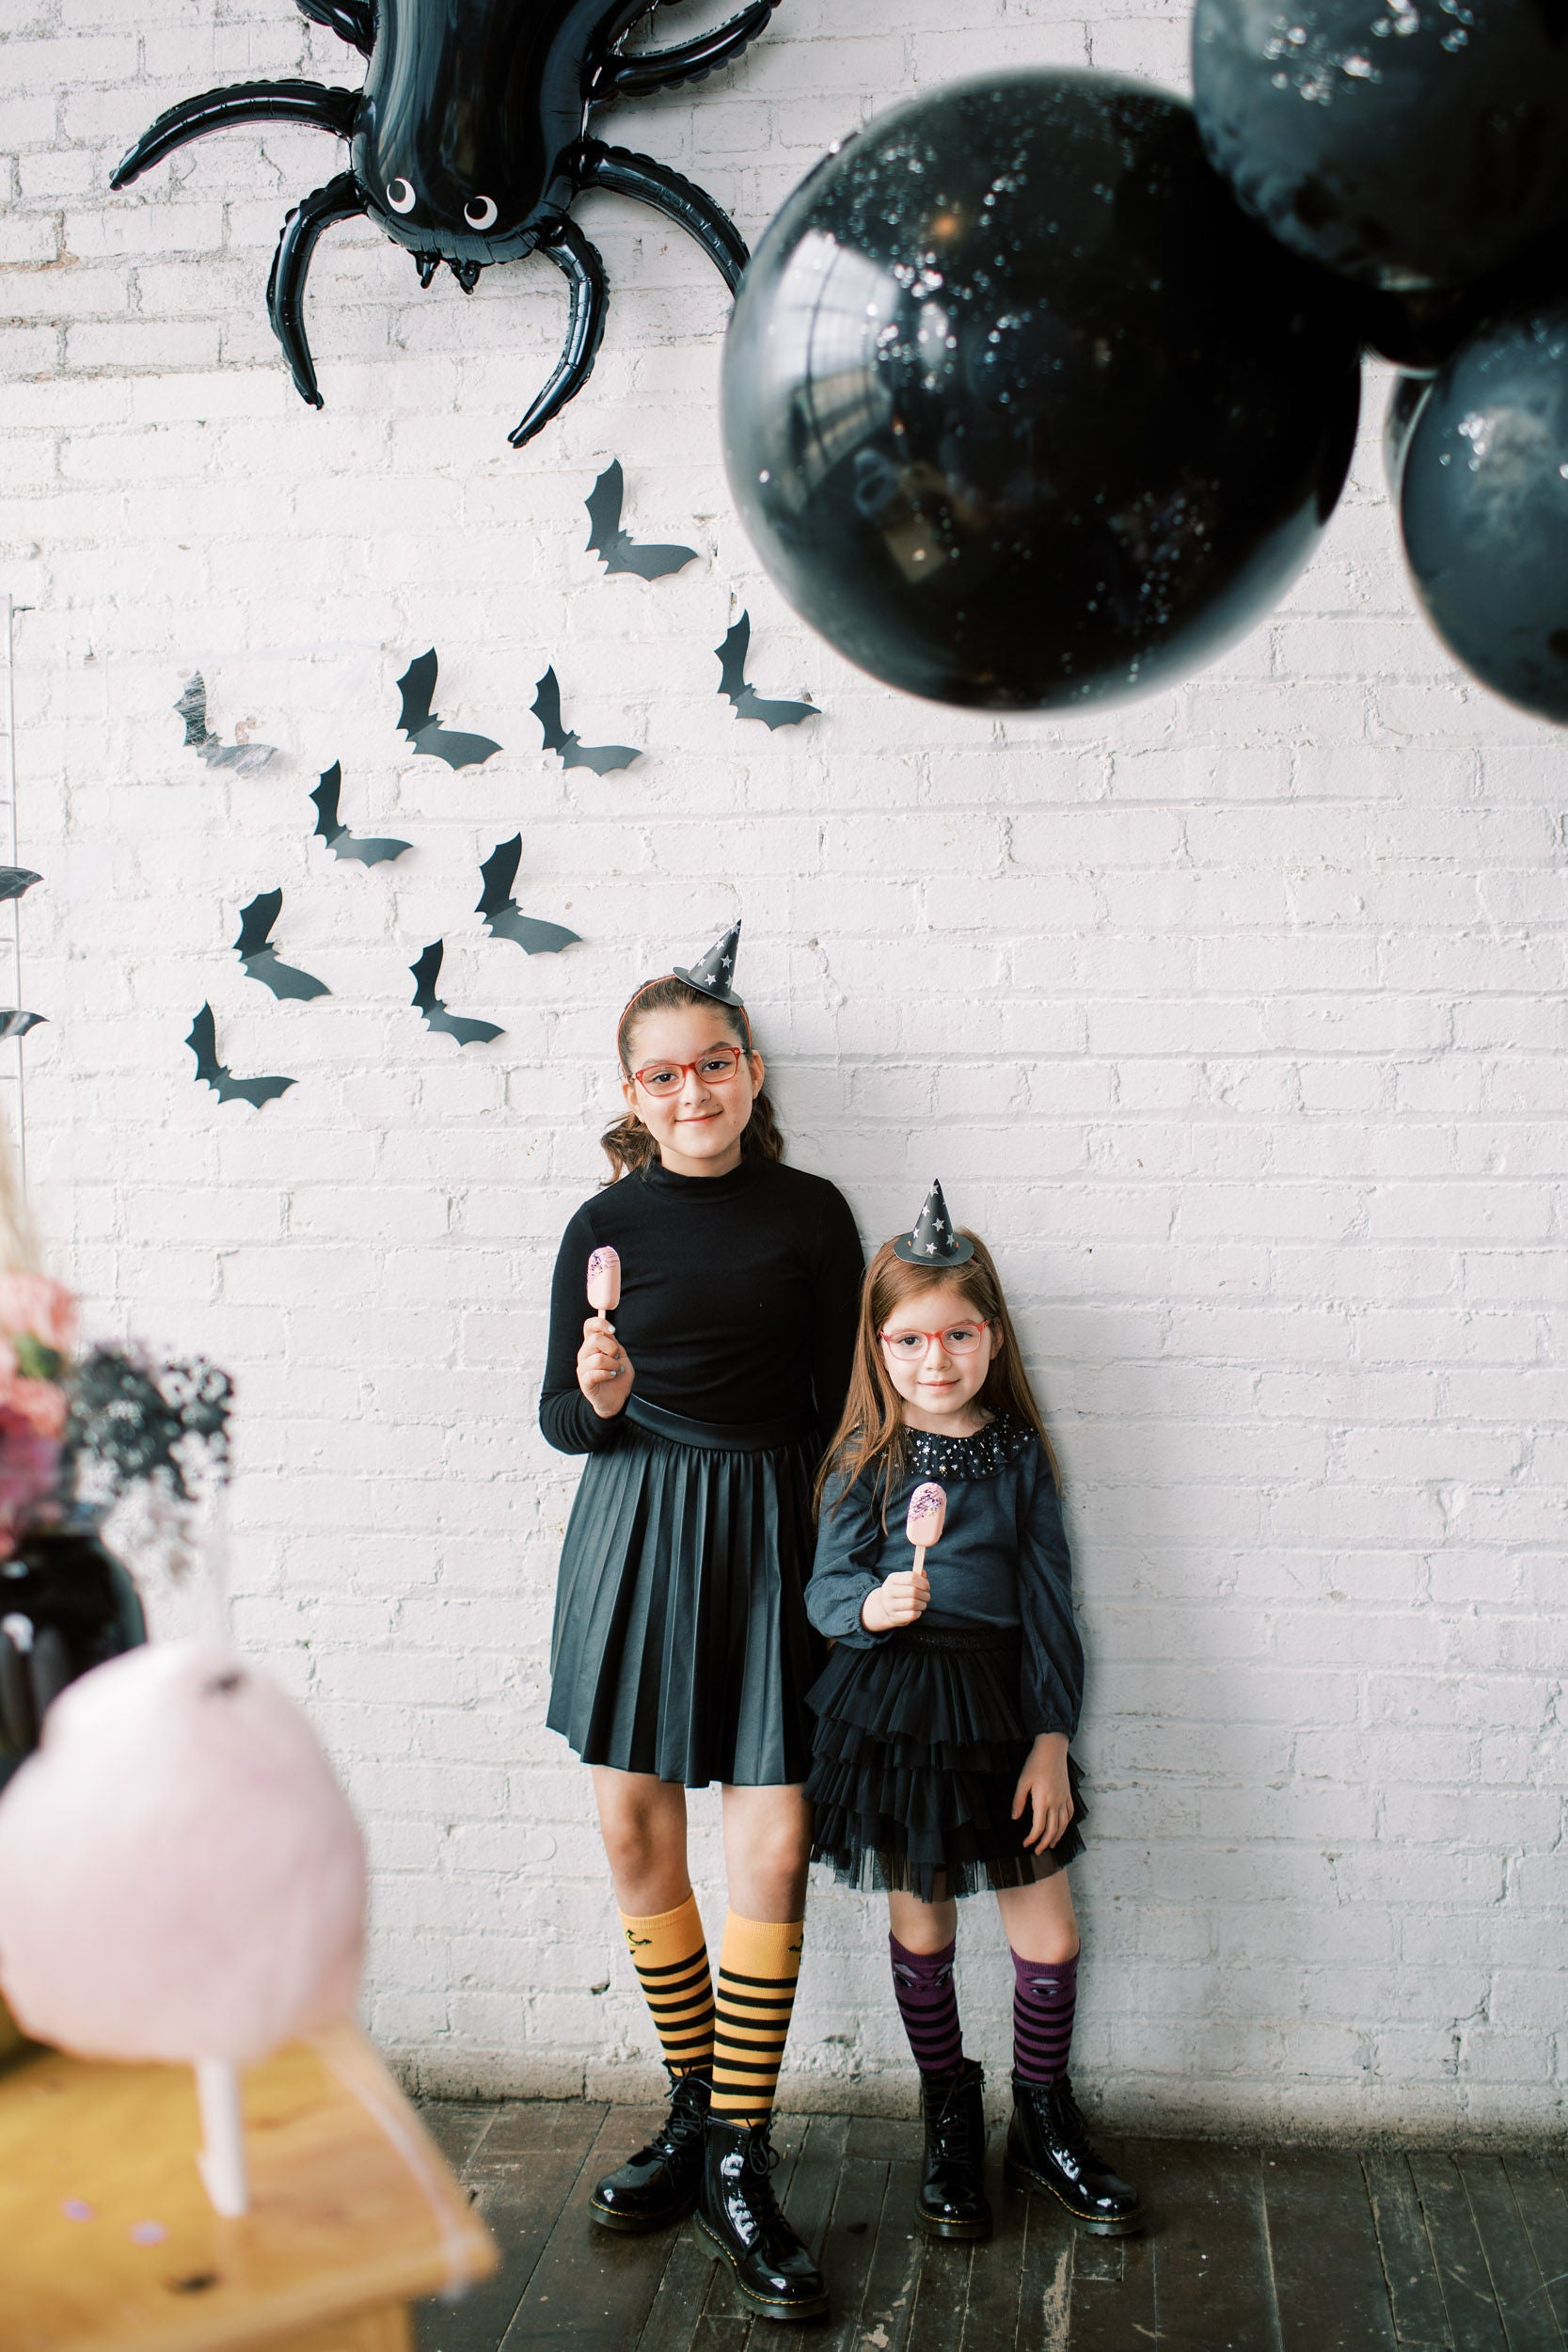 hocus pocus halloween party and glittery bats